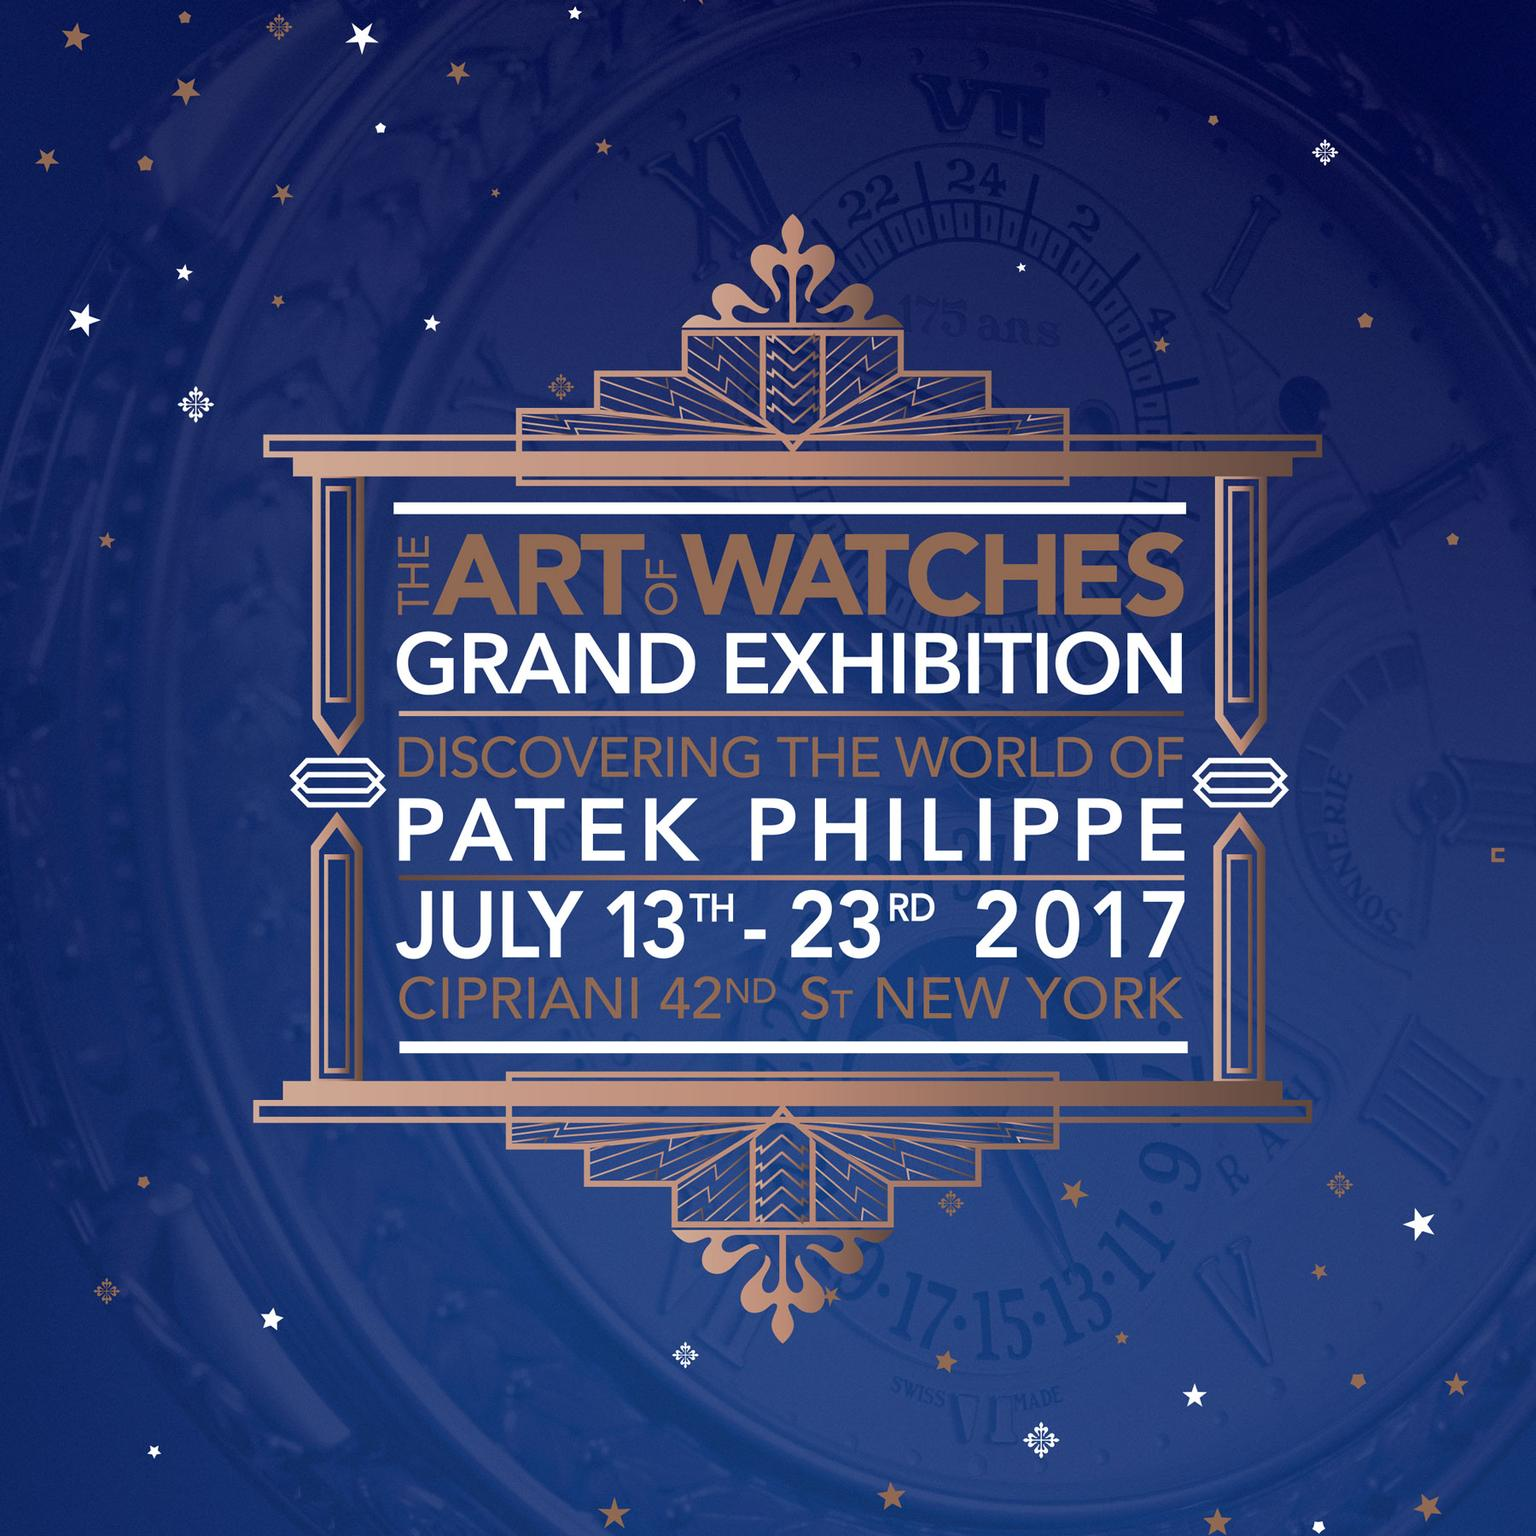 Patek Philippe's The Art of Watches Grand Exhibition logo